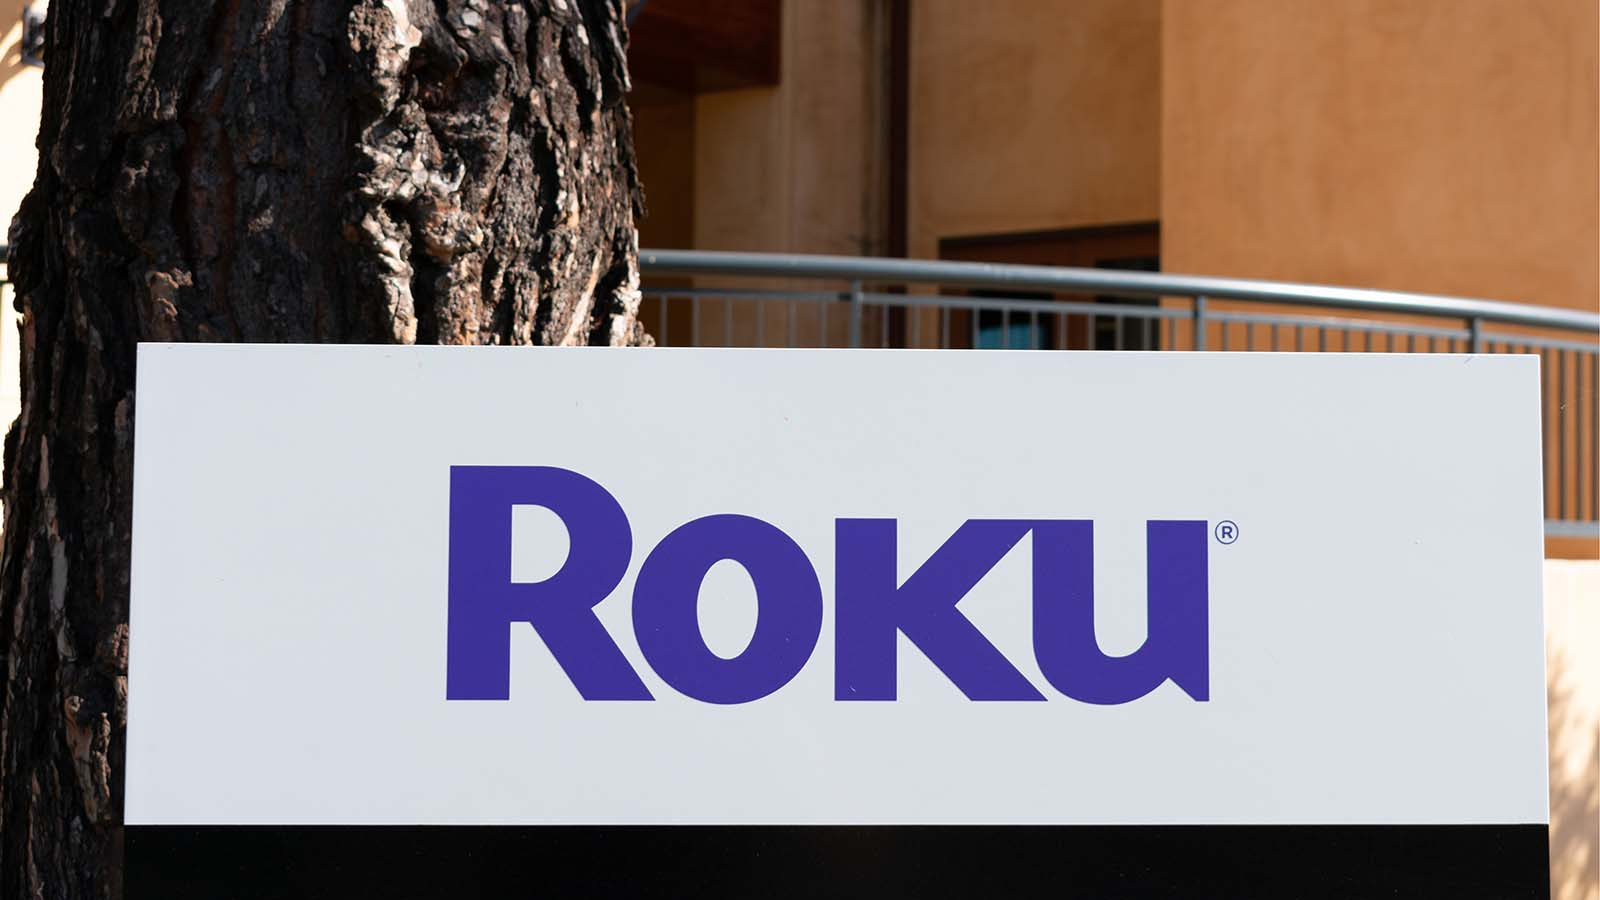 Could Roku Stock Be Heading for a Correction?